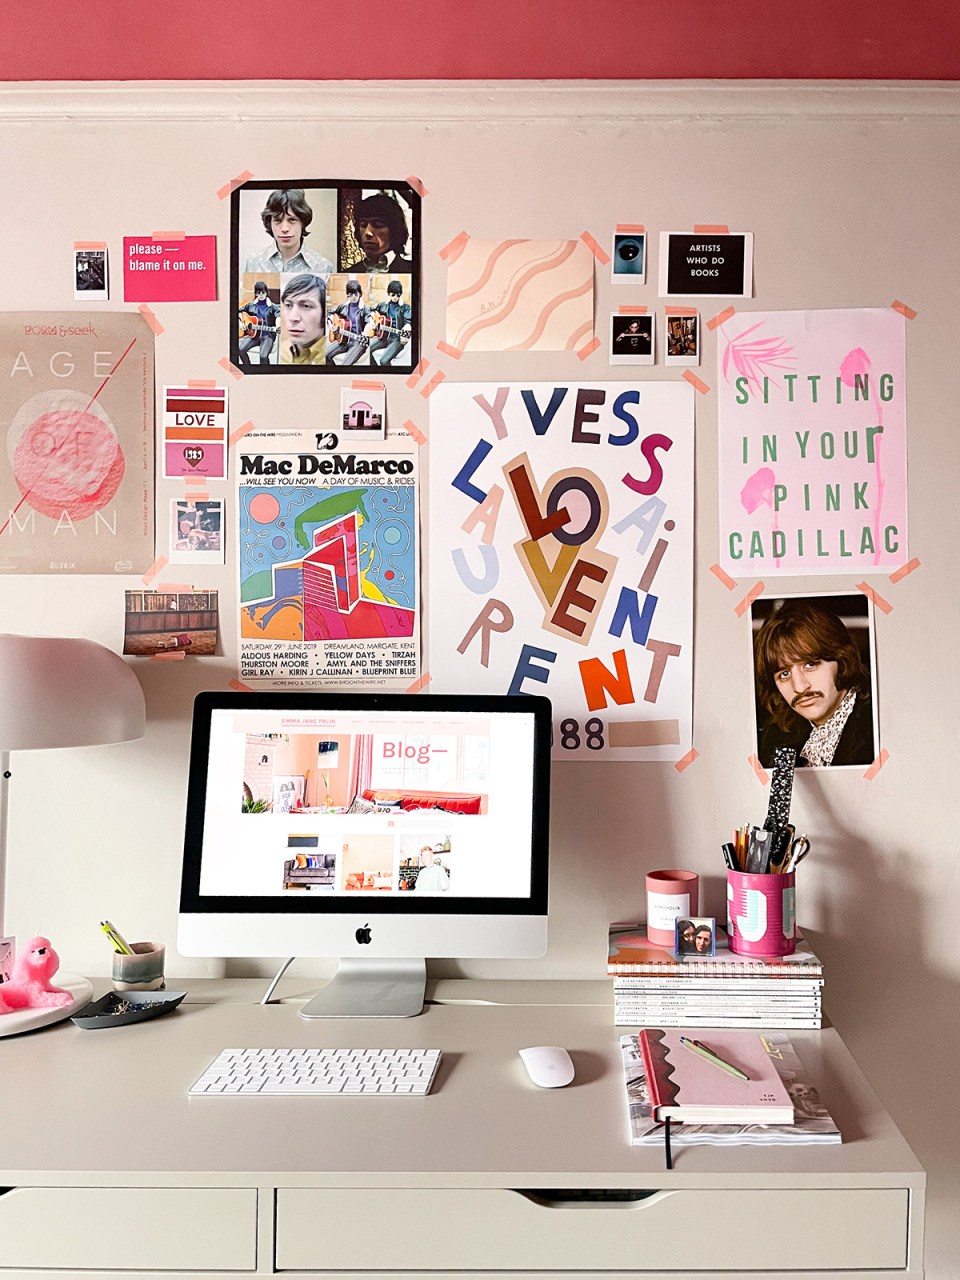 multifunctional home office space with artwork on walls